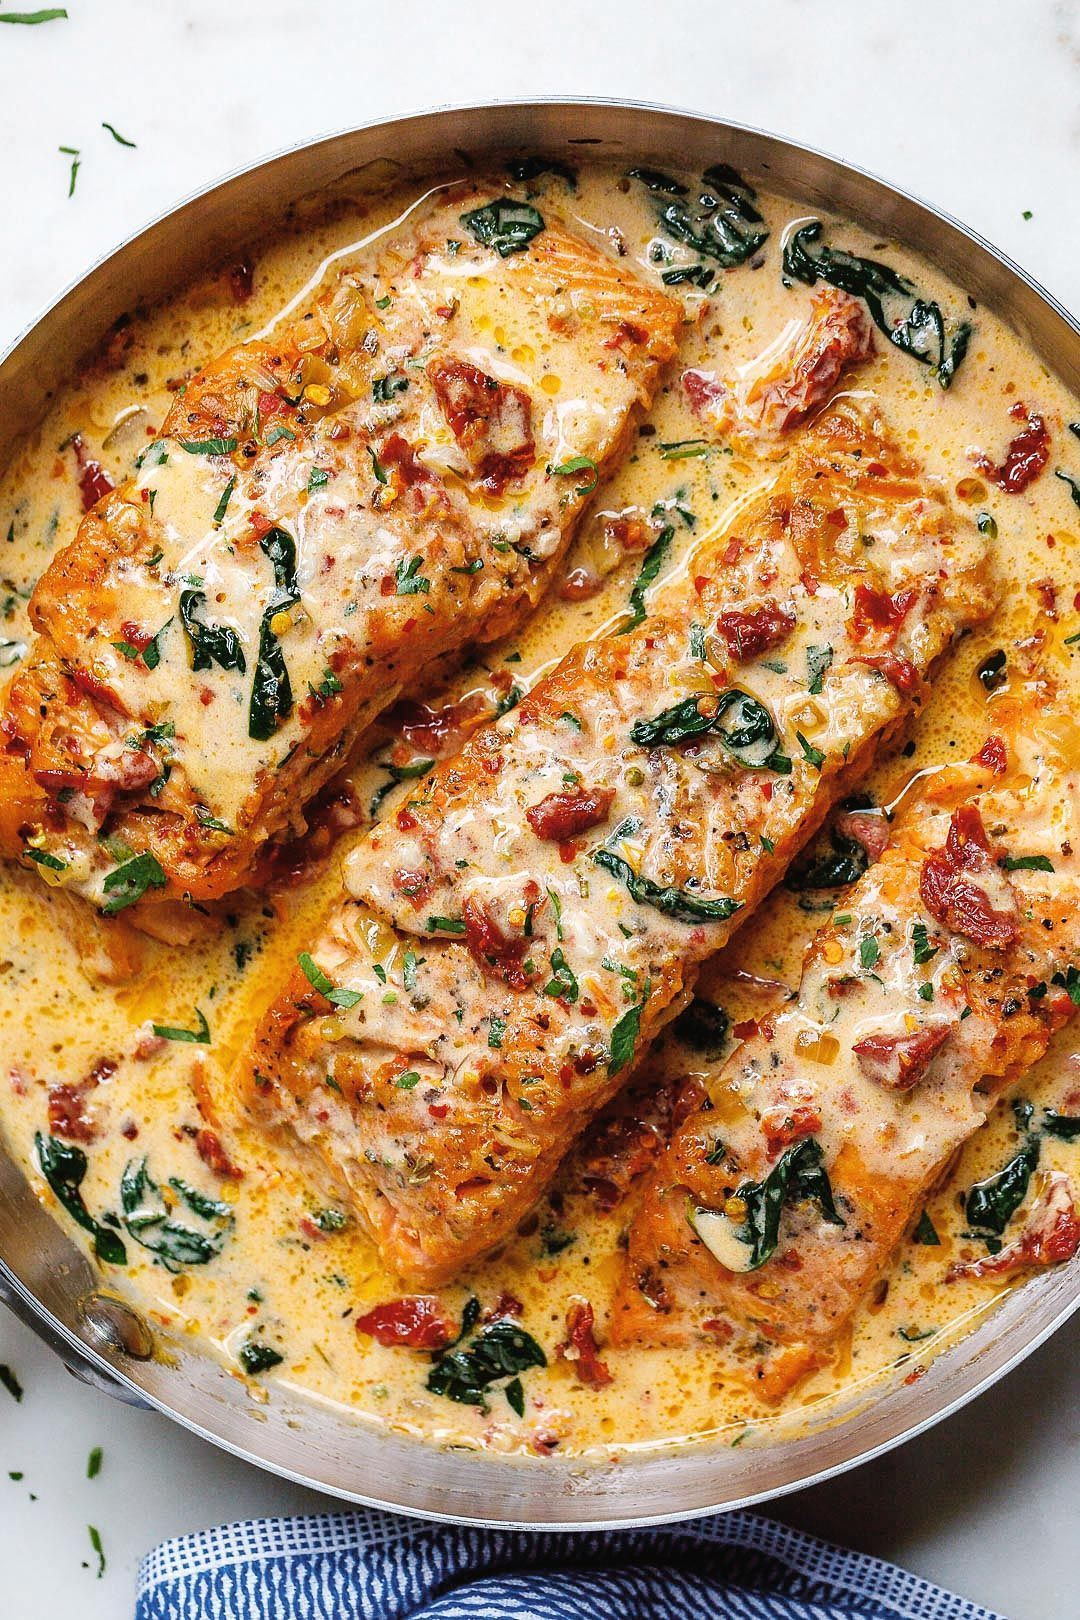 Creamy Tuscan garlic salmon with spinach and sun-dried tomatoes - #salmon #Reci ... - #creamy #dried #garlic #salmon #spinach #tomatoes #tuscan - #new